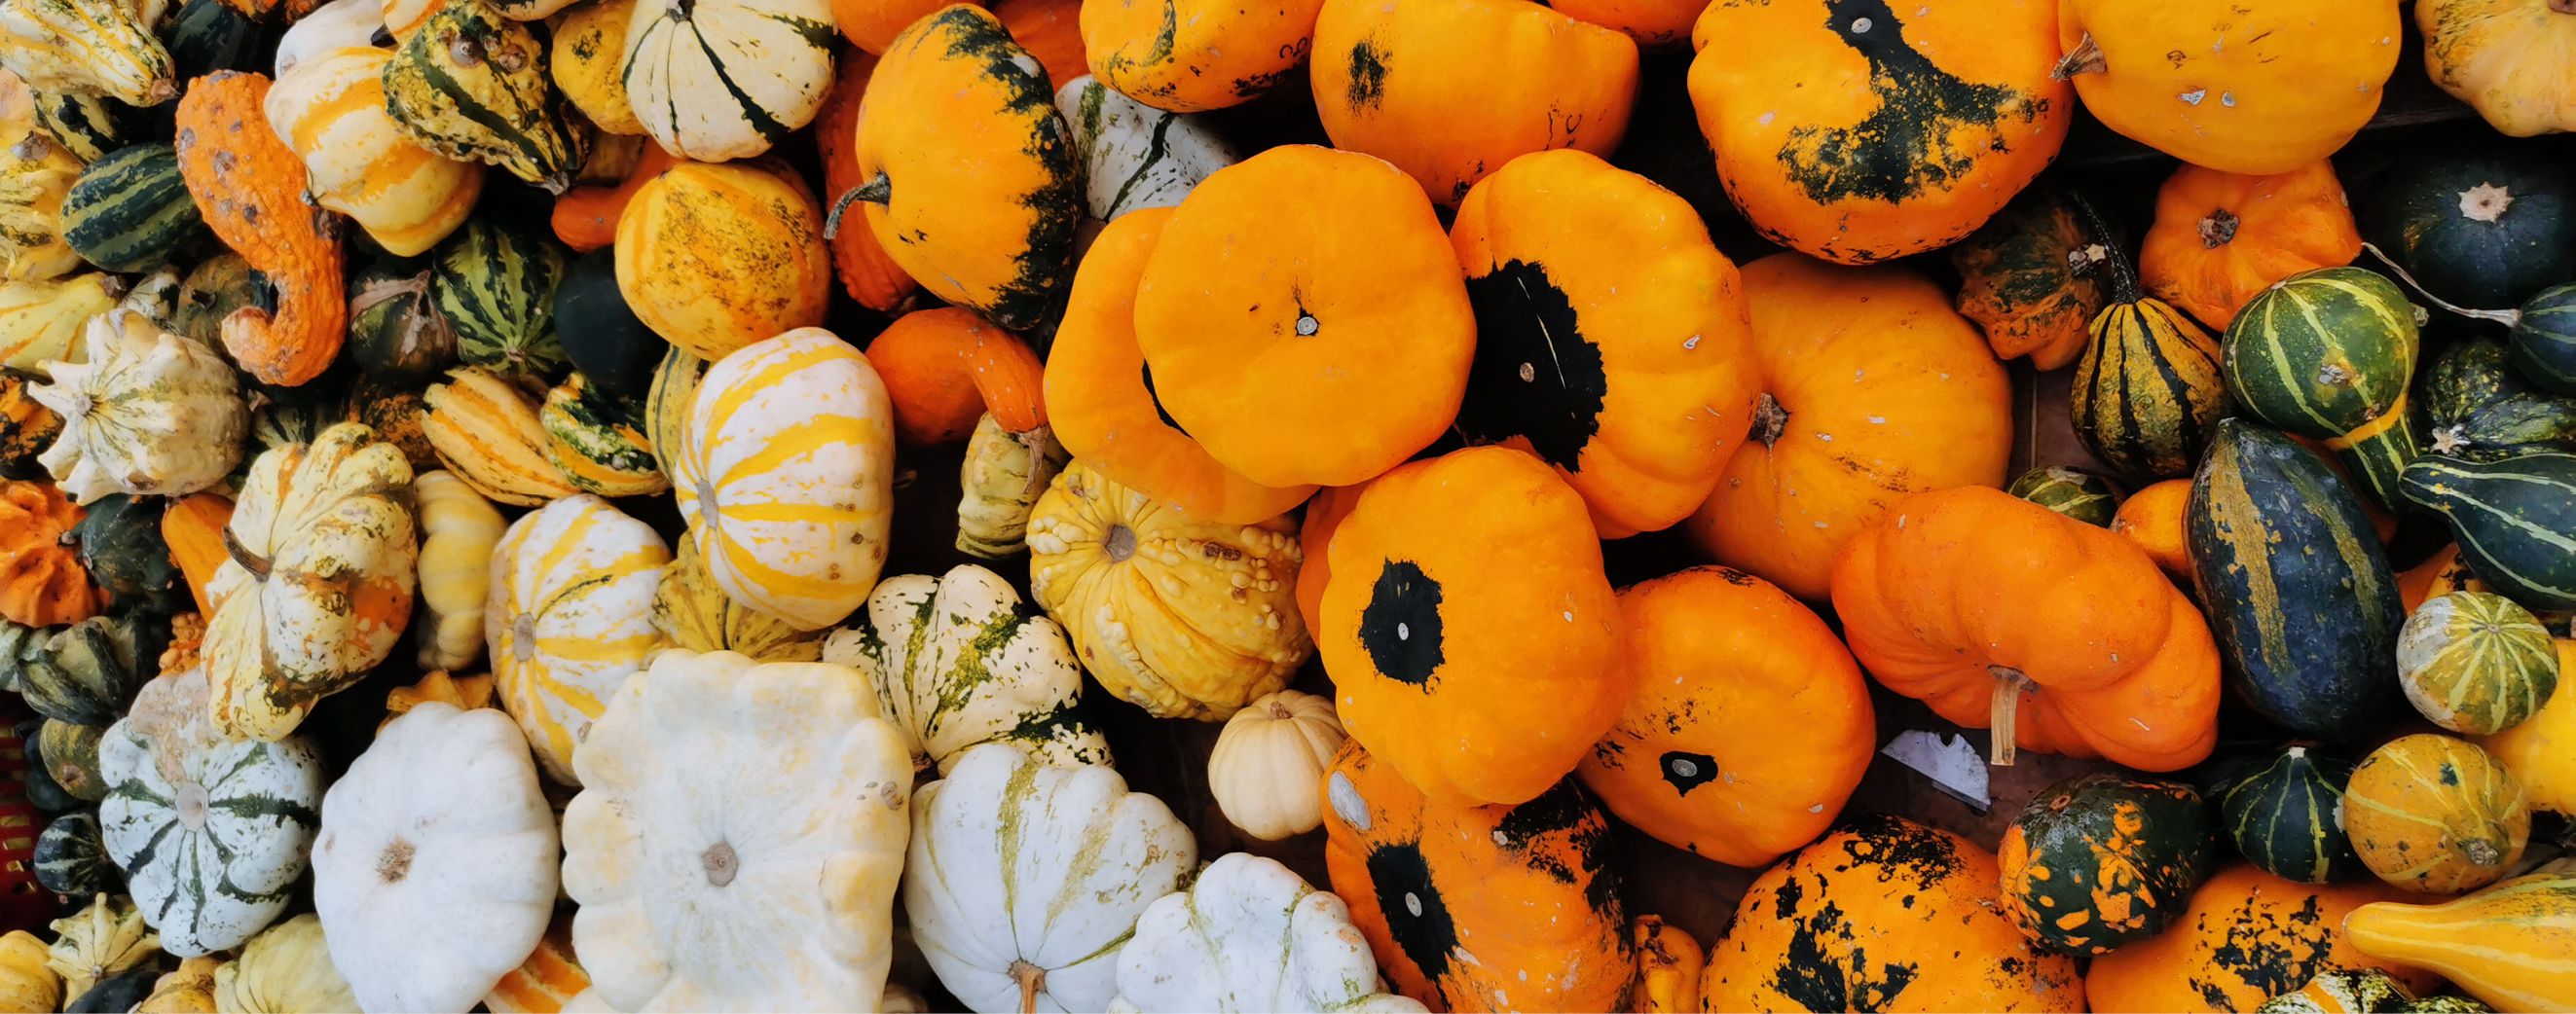 Commercial Production and Management of Pumpkins and Gourds